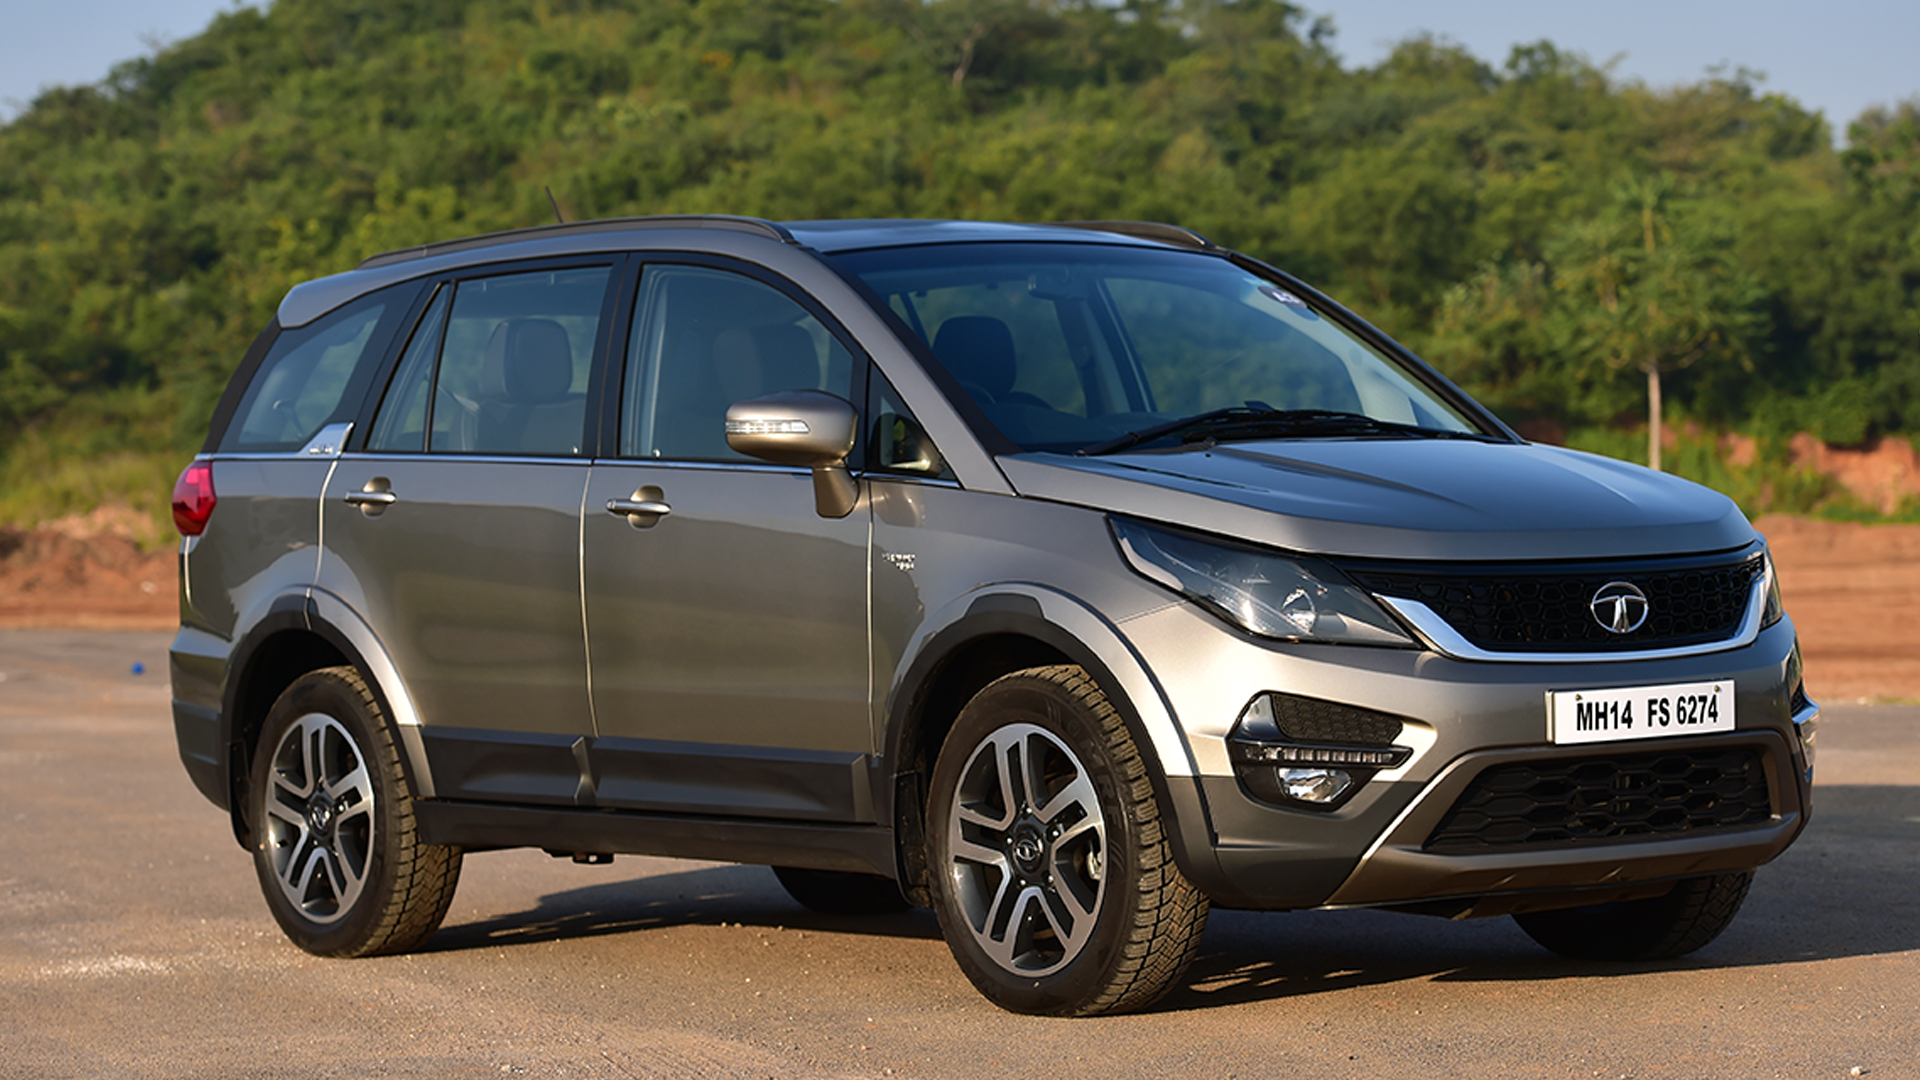 Tata Hexa 2017 XE MT Price Mileage Reviews Specification